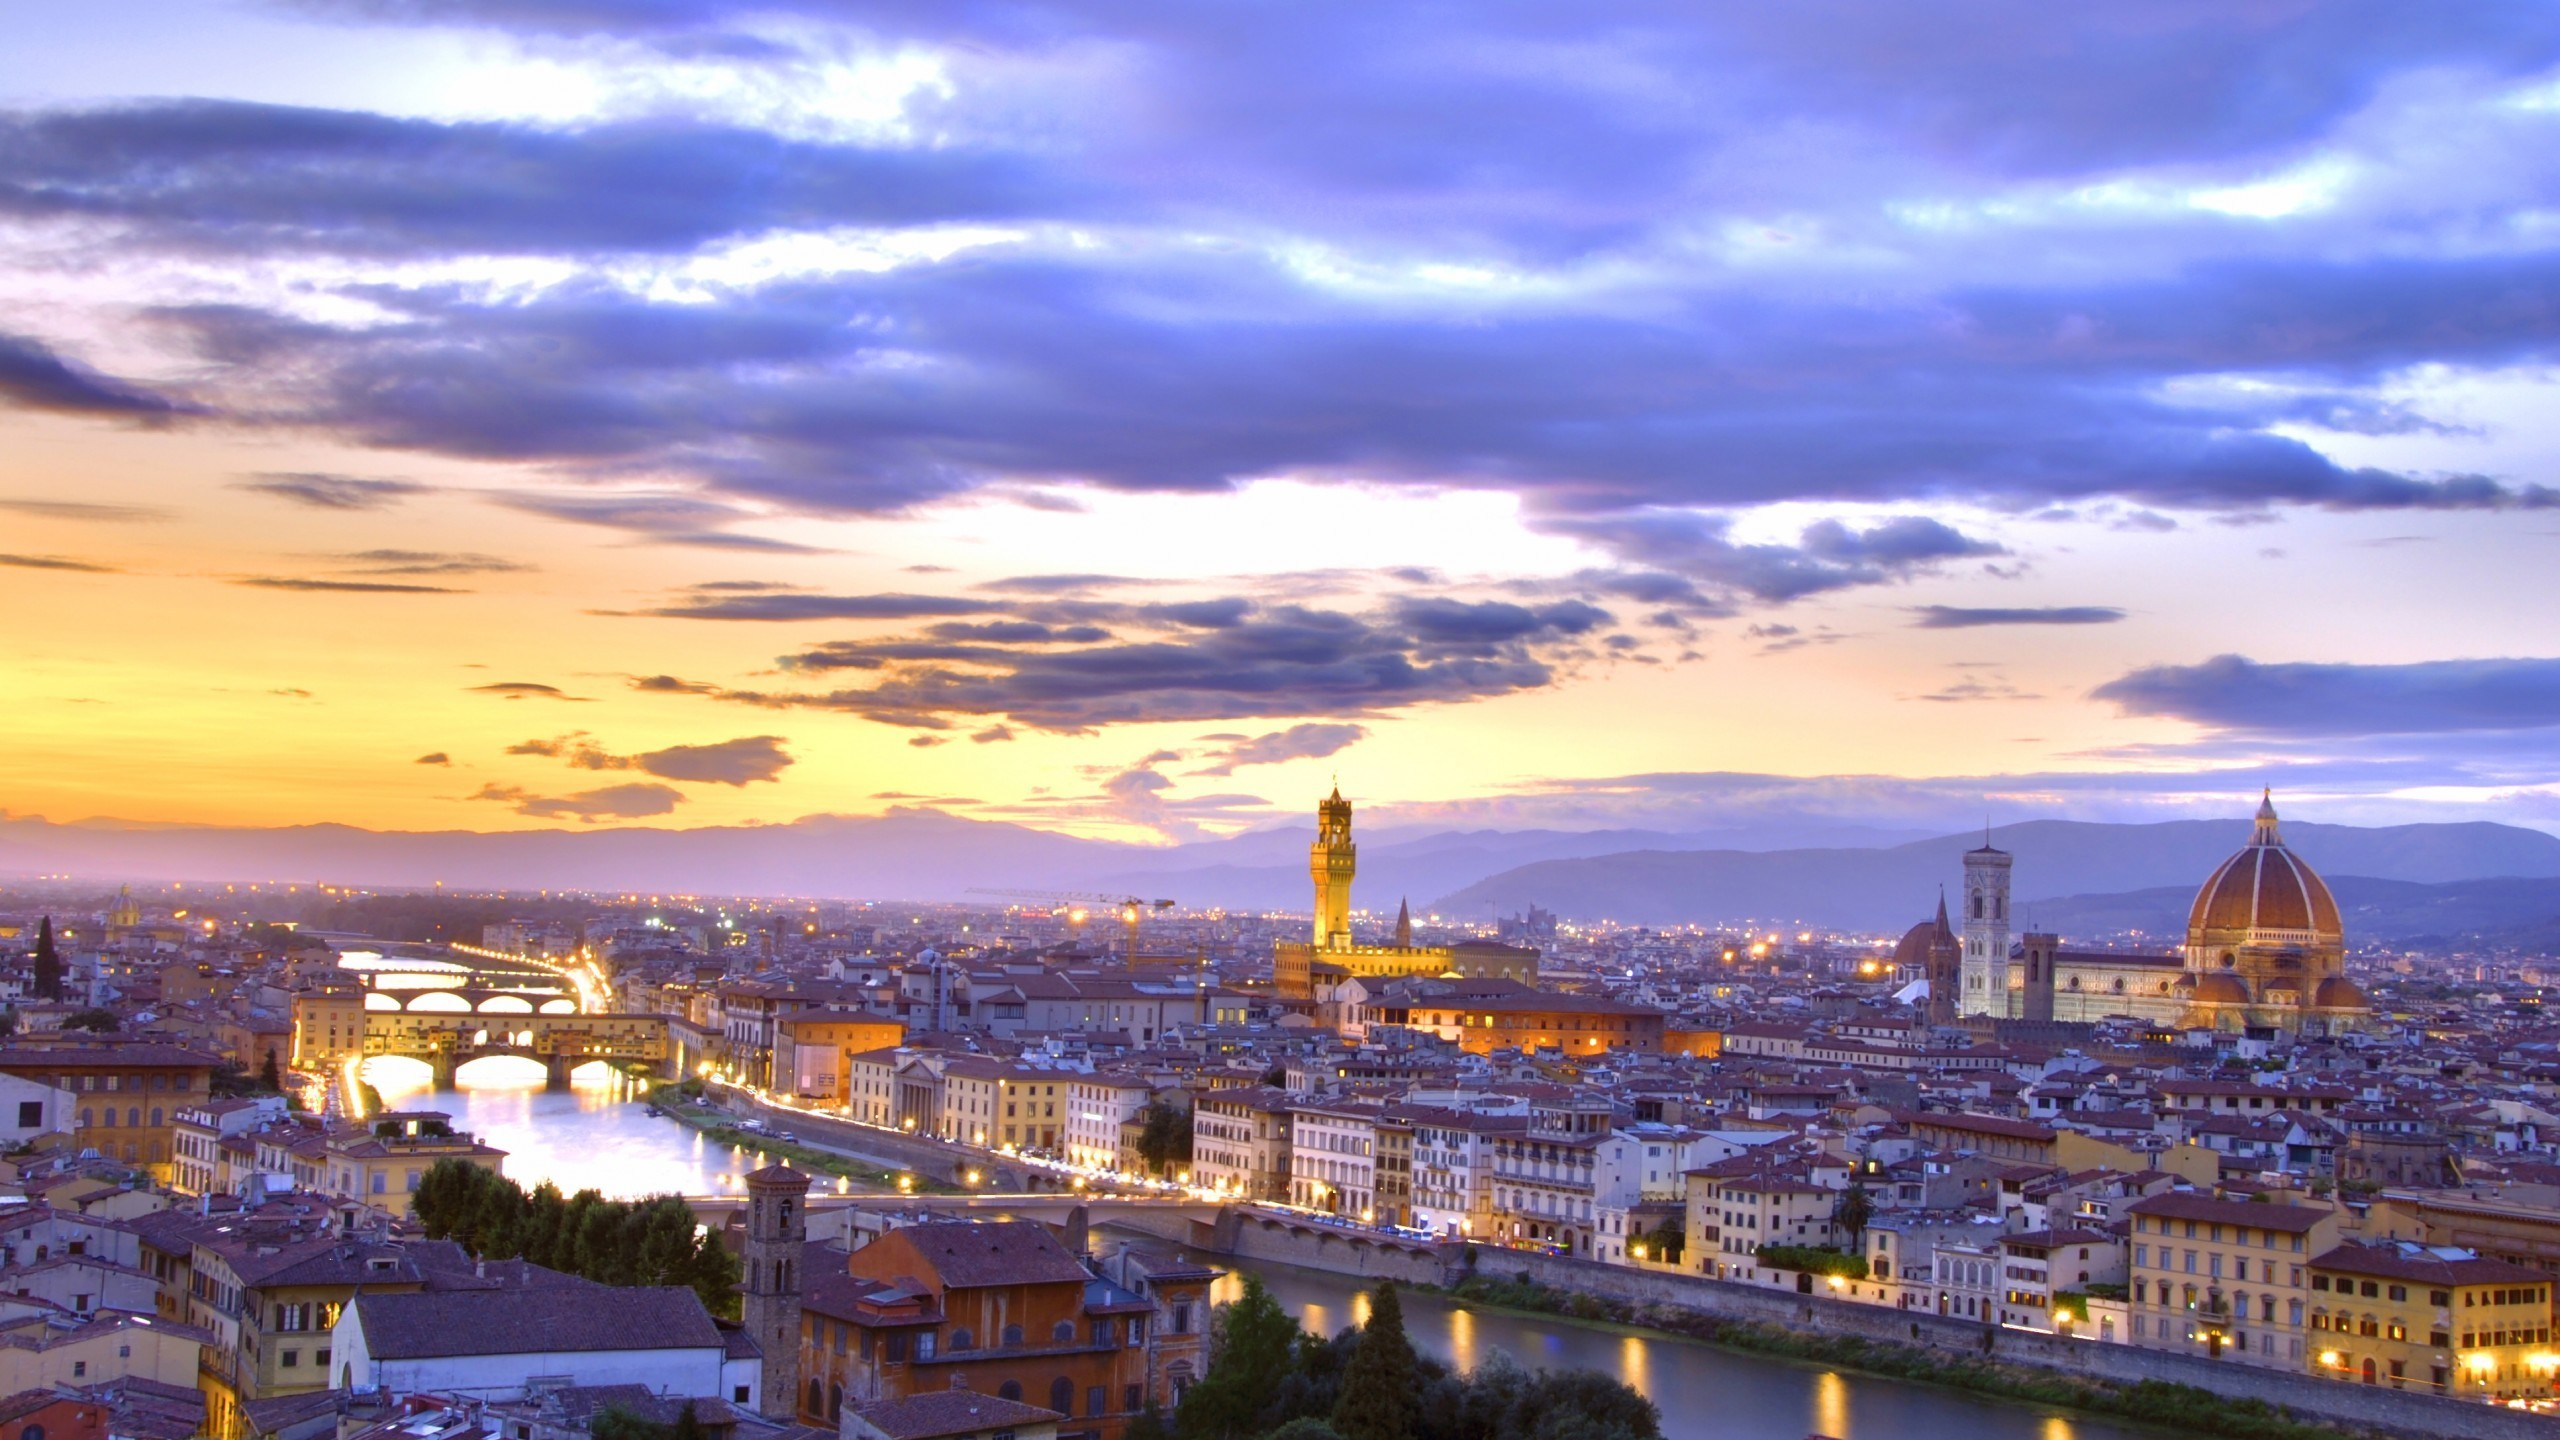 2560x1440 Italy, Florence, Canal, Sunset, Cityscape, Buildings